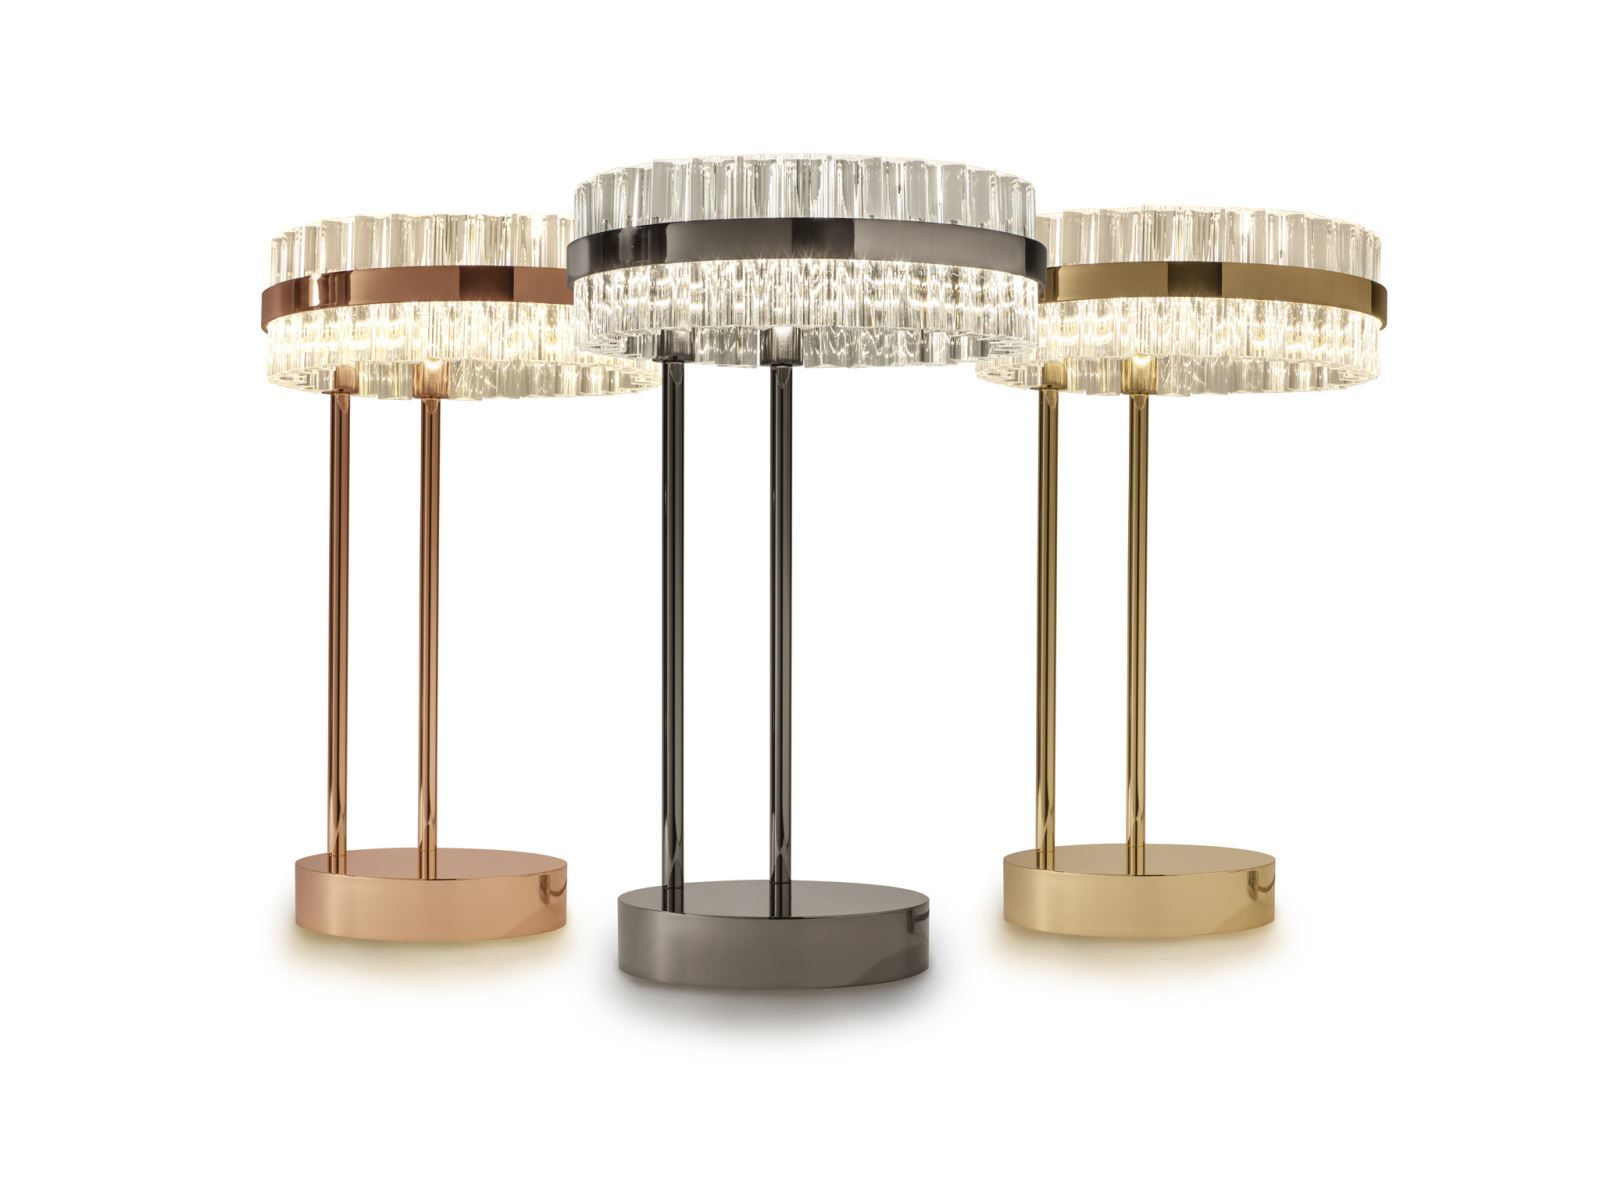 Replica saturno led table lamp by baroncelli buy in online shop replica saturno led table lamp by baroncelli aloadofball Image collections